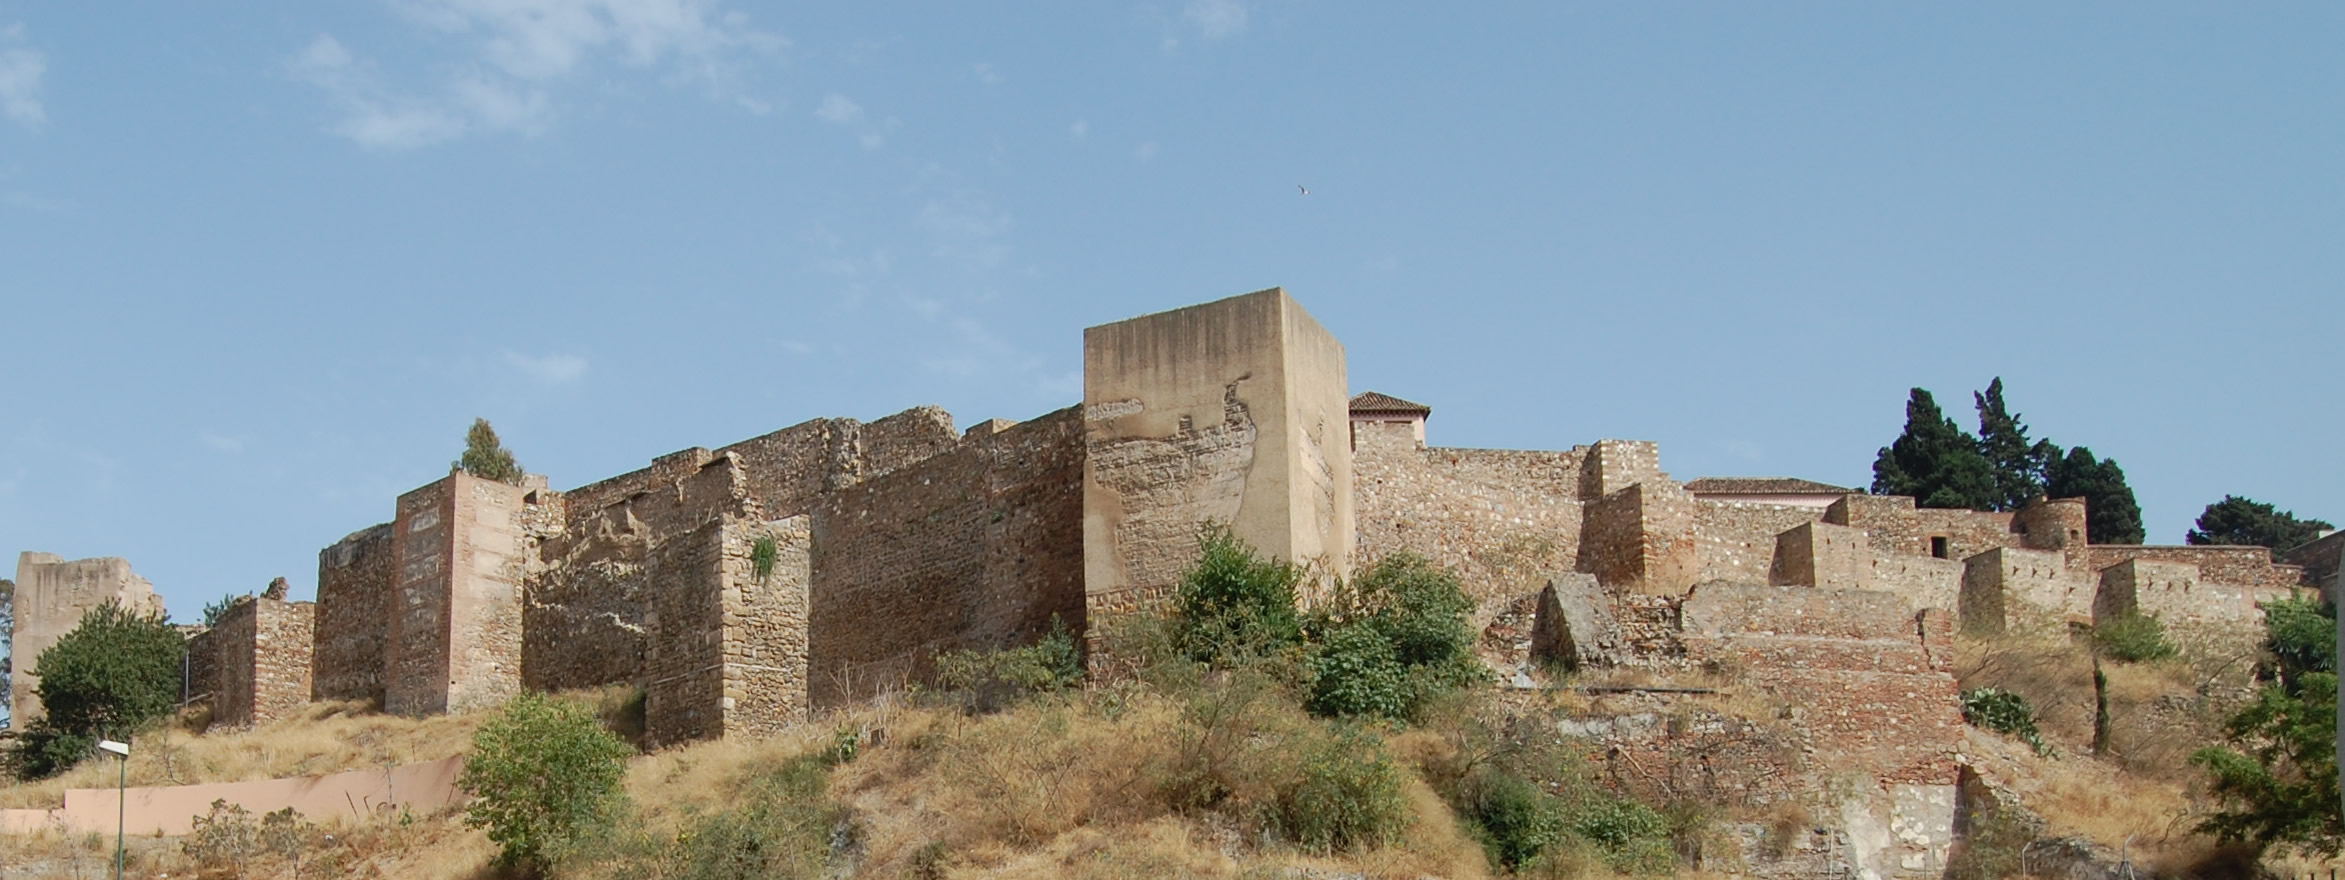 File:The Alcazaba of Málaga.JPG - Wikimedia Commons